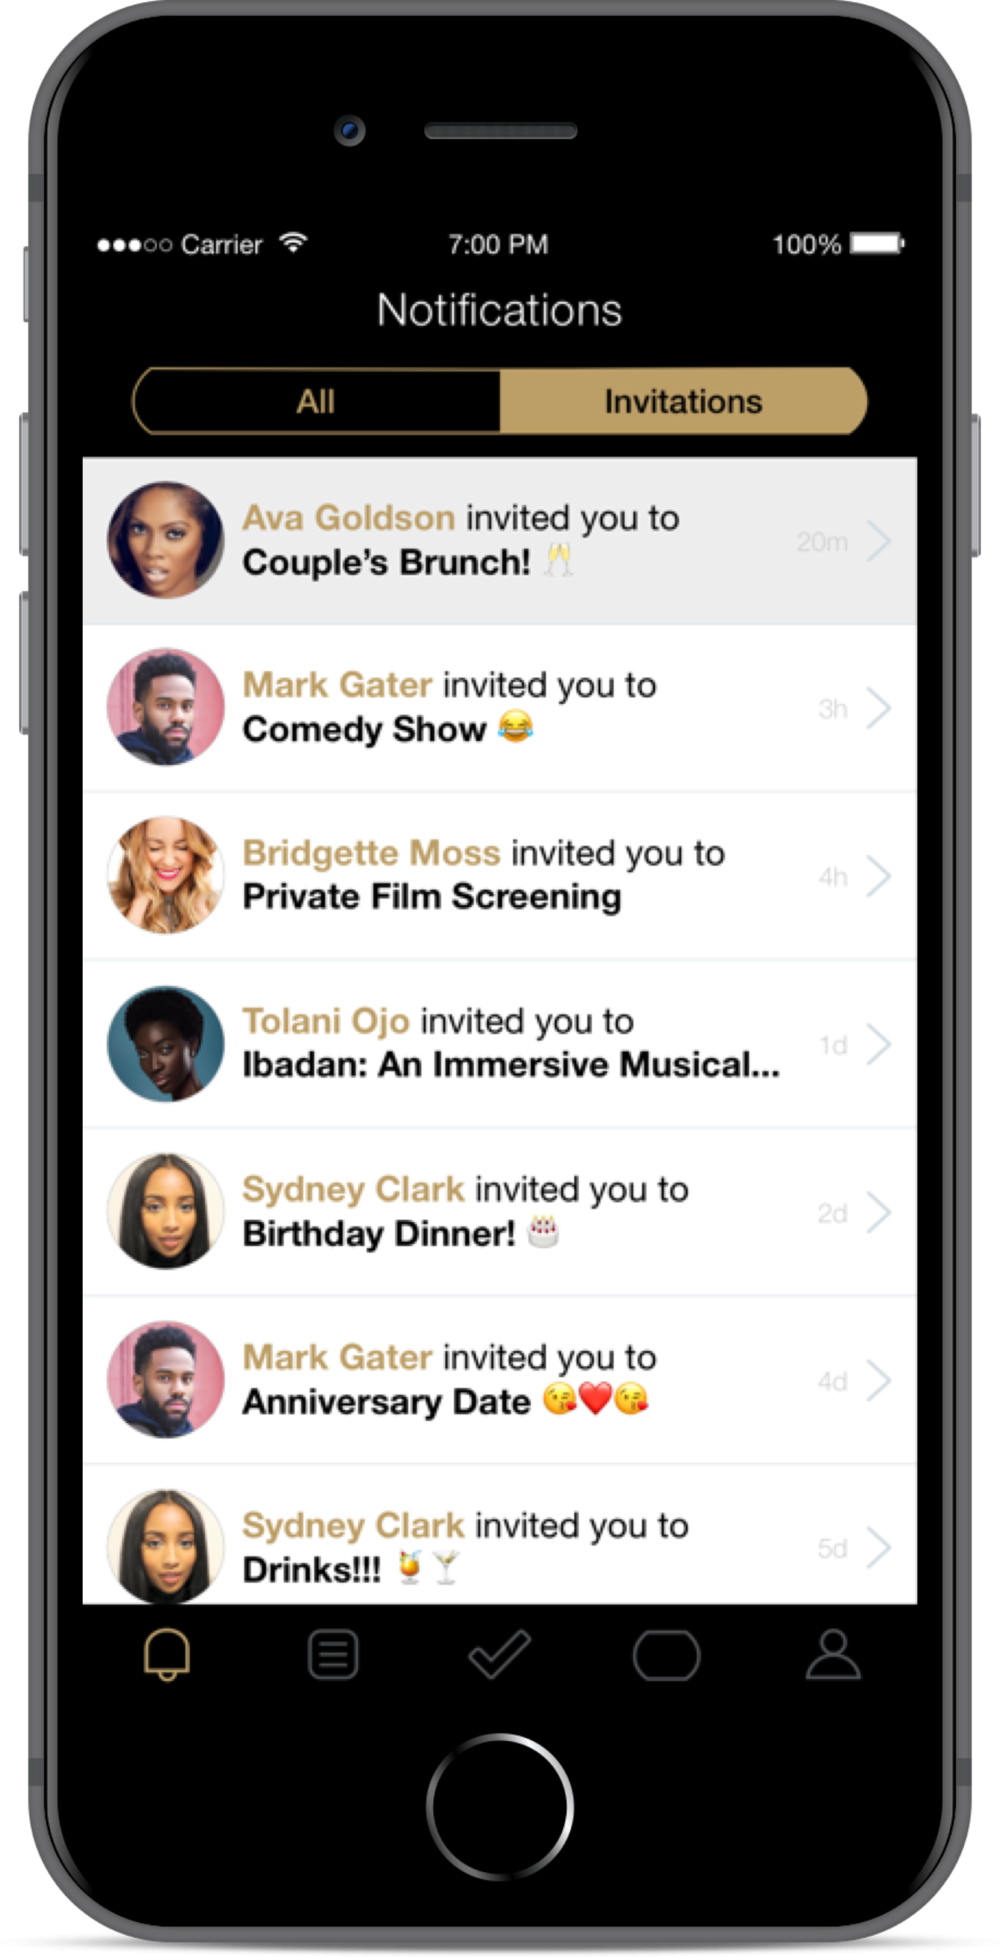 Veronica taps on the notifications icon and sees that her friend Ava invited her to Couple's Brunch! 🥂20 minutes ago.